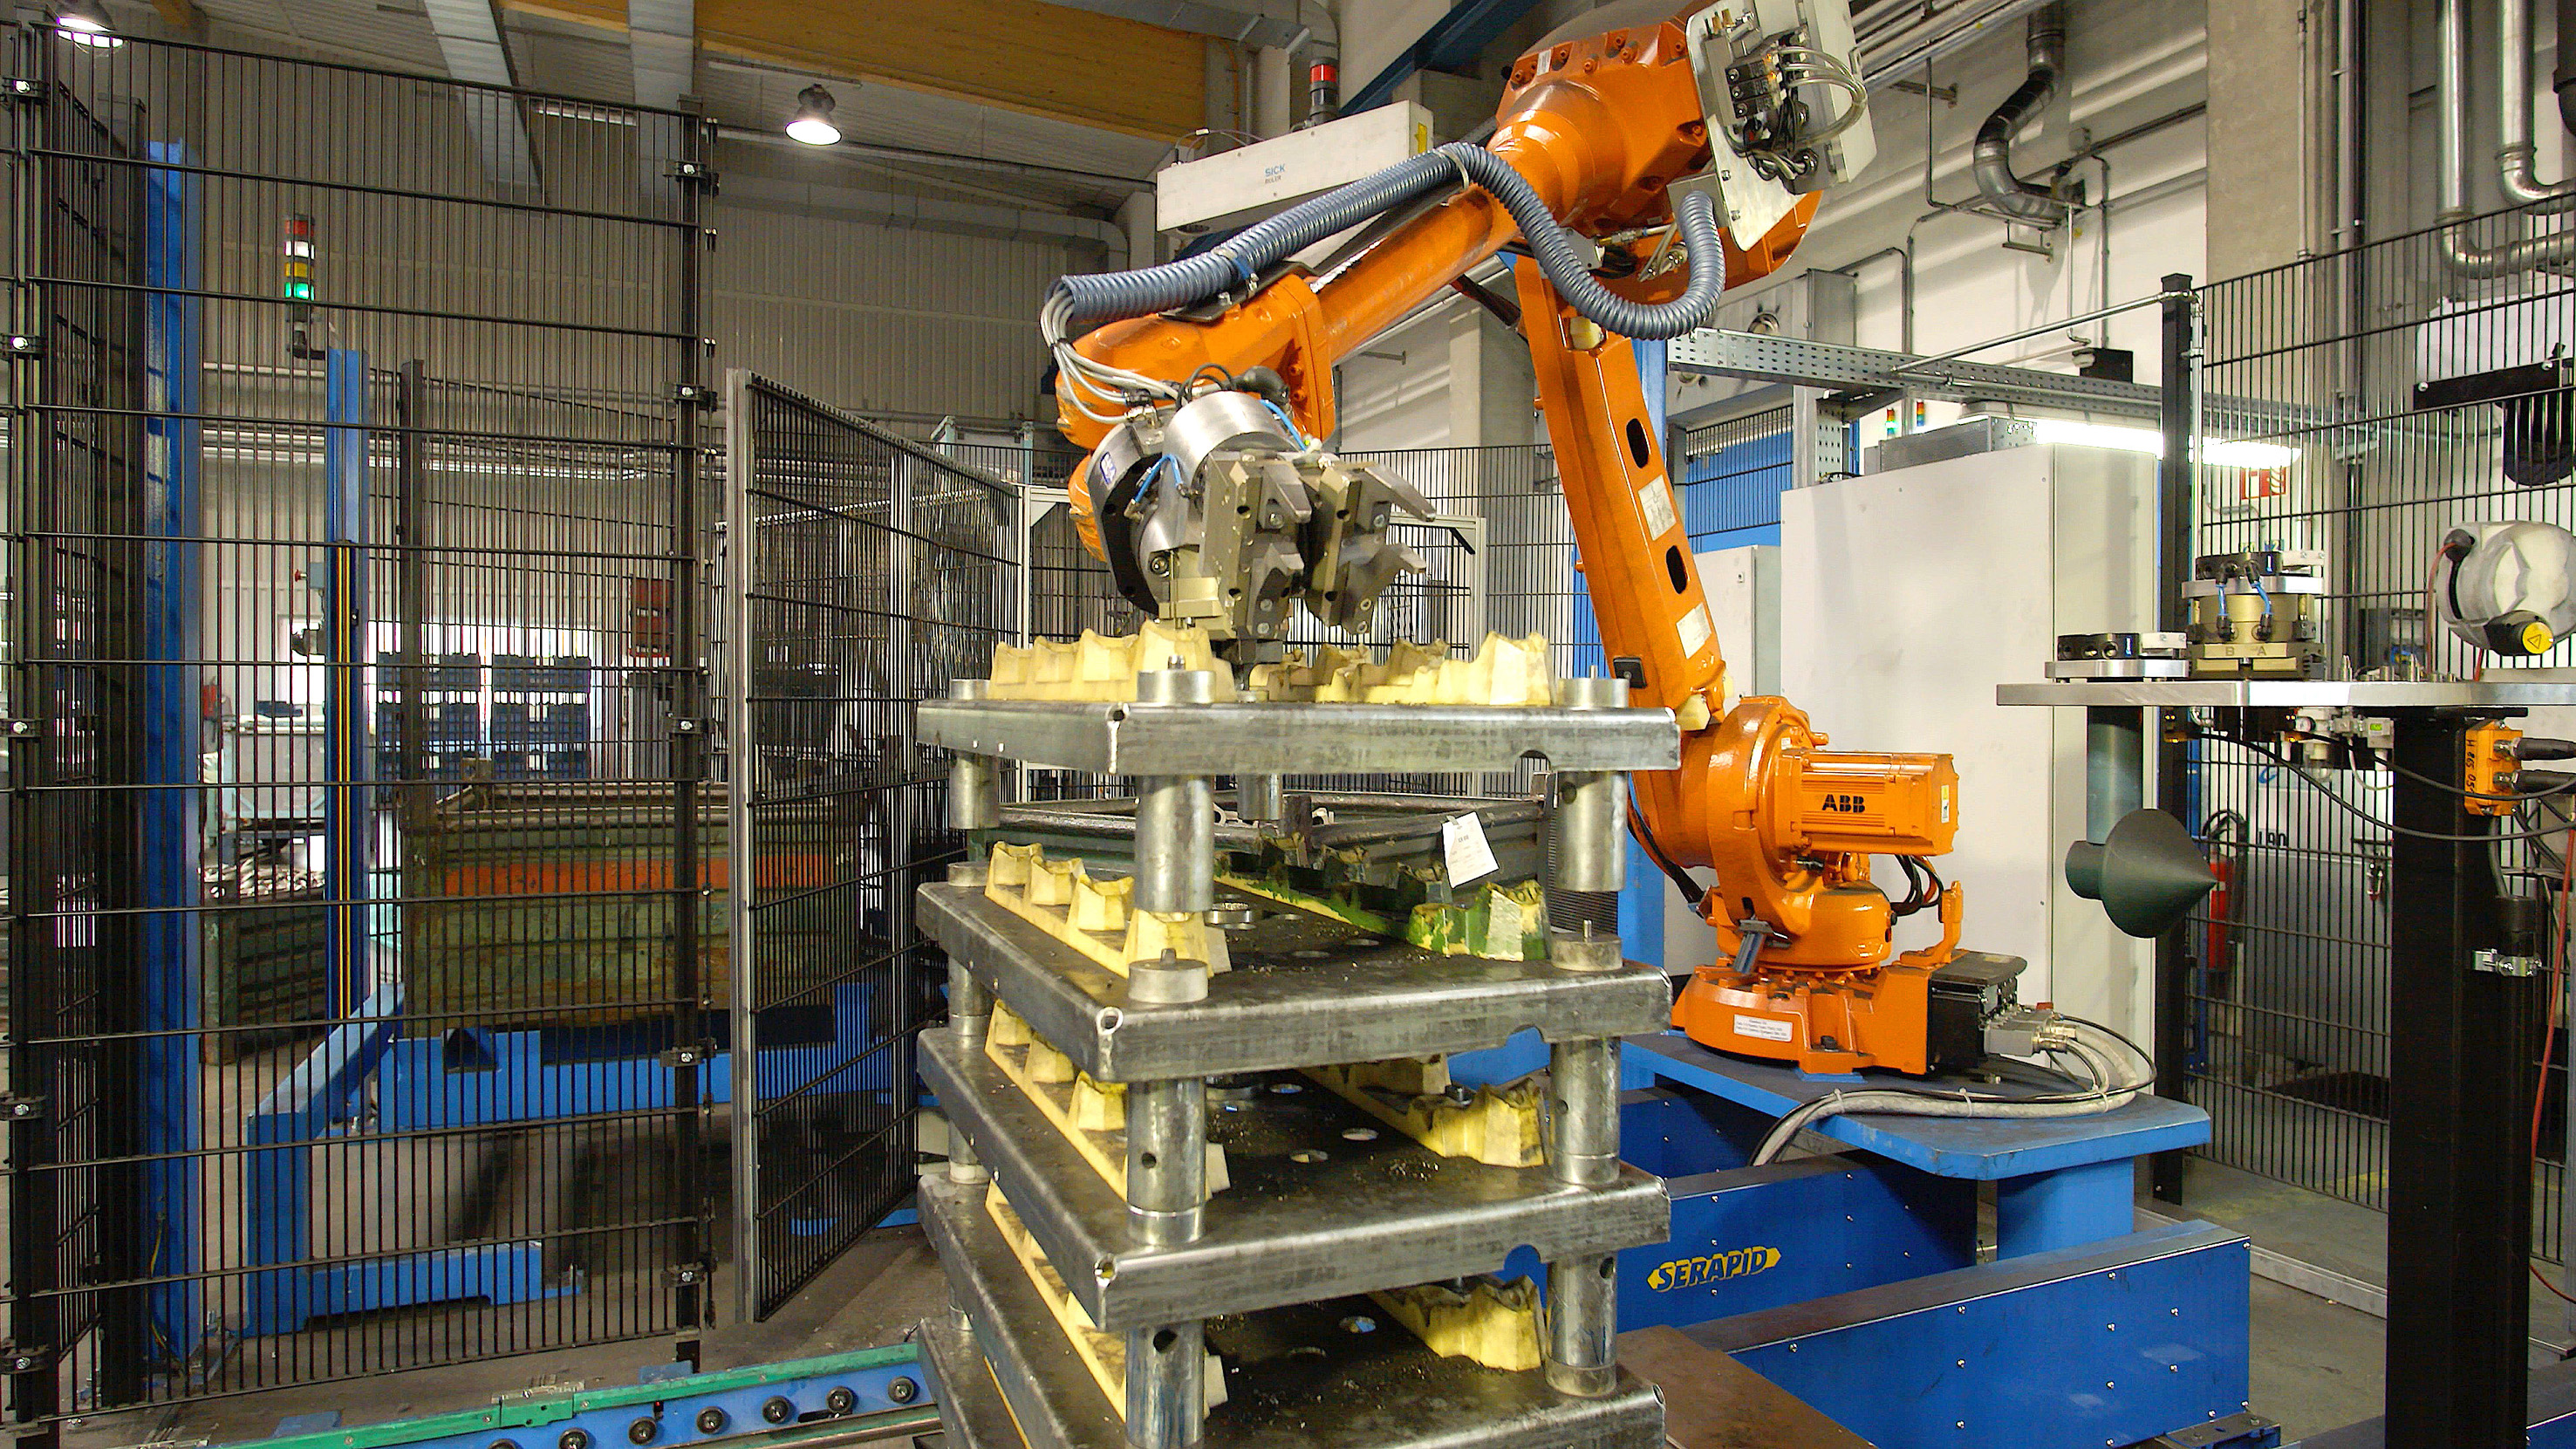 automated bin picking, The Industrial Robot Revolution: A Video Series (Part 2)